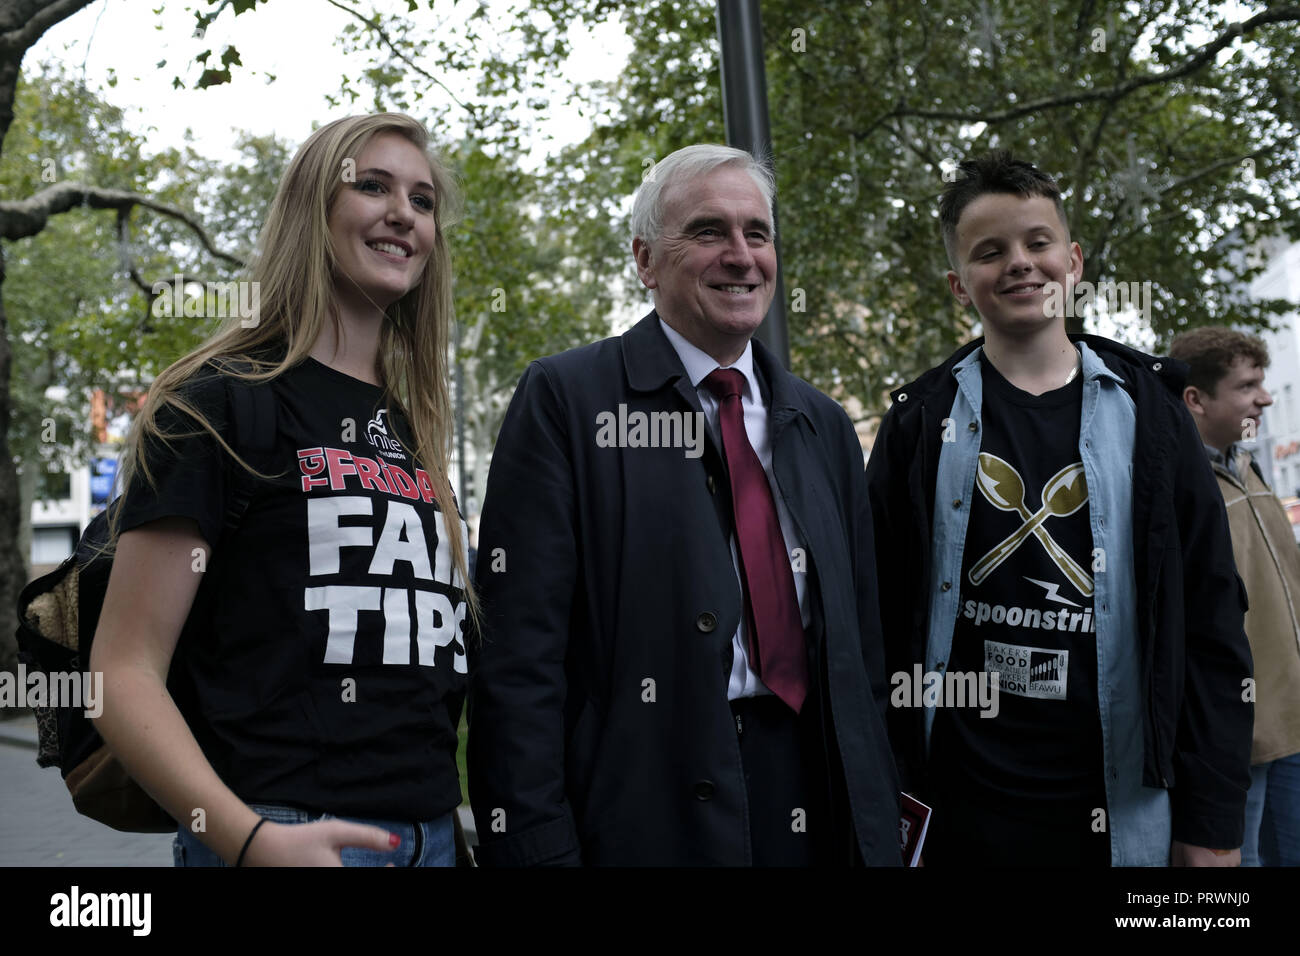 London, Greater London, UK. 5th Oct, 2018. John McDonnell (centre), Labor Member of Parliament seen during the demonstration.Wetherspoons, TGI Fridays, and McDonald's workers rally together in London to demand better working conditions and a fair pay in the hospitality industry. Credit: Andres Pantoja/SOPA Images/ZUMA Wire/Alamy Live News - Stock Image